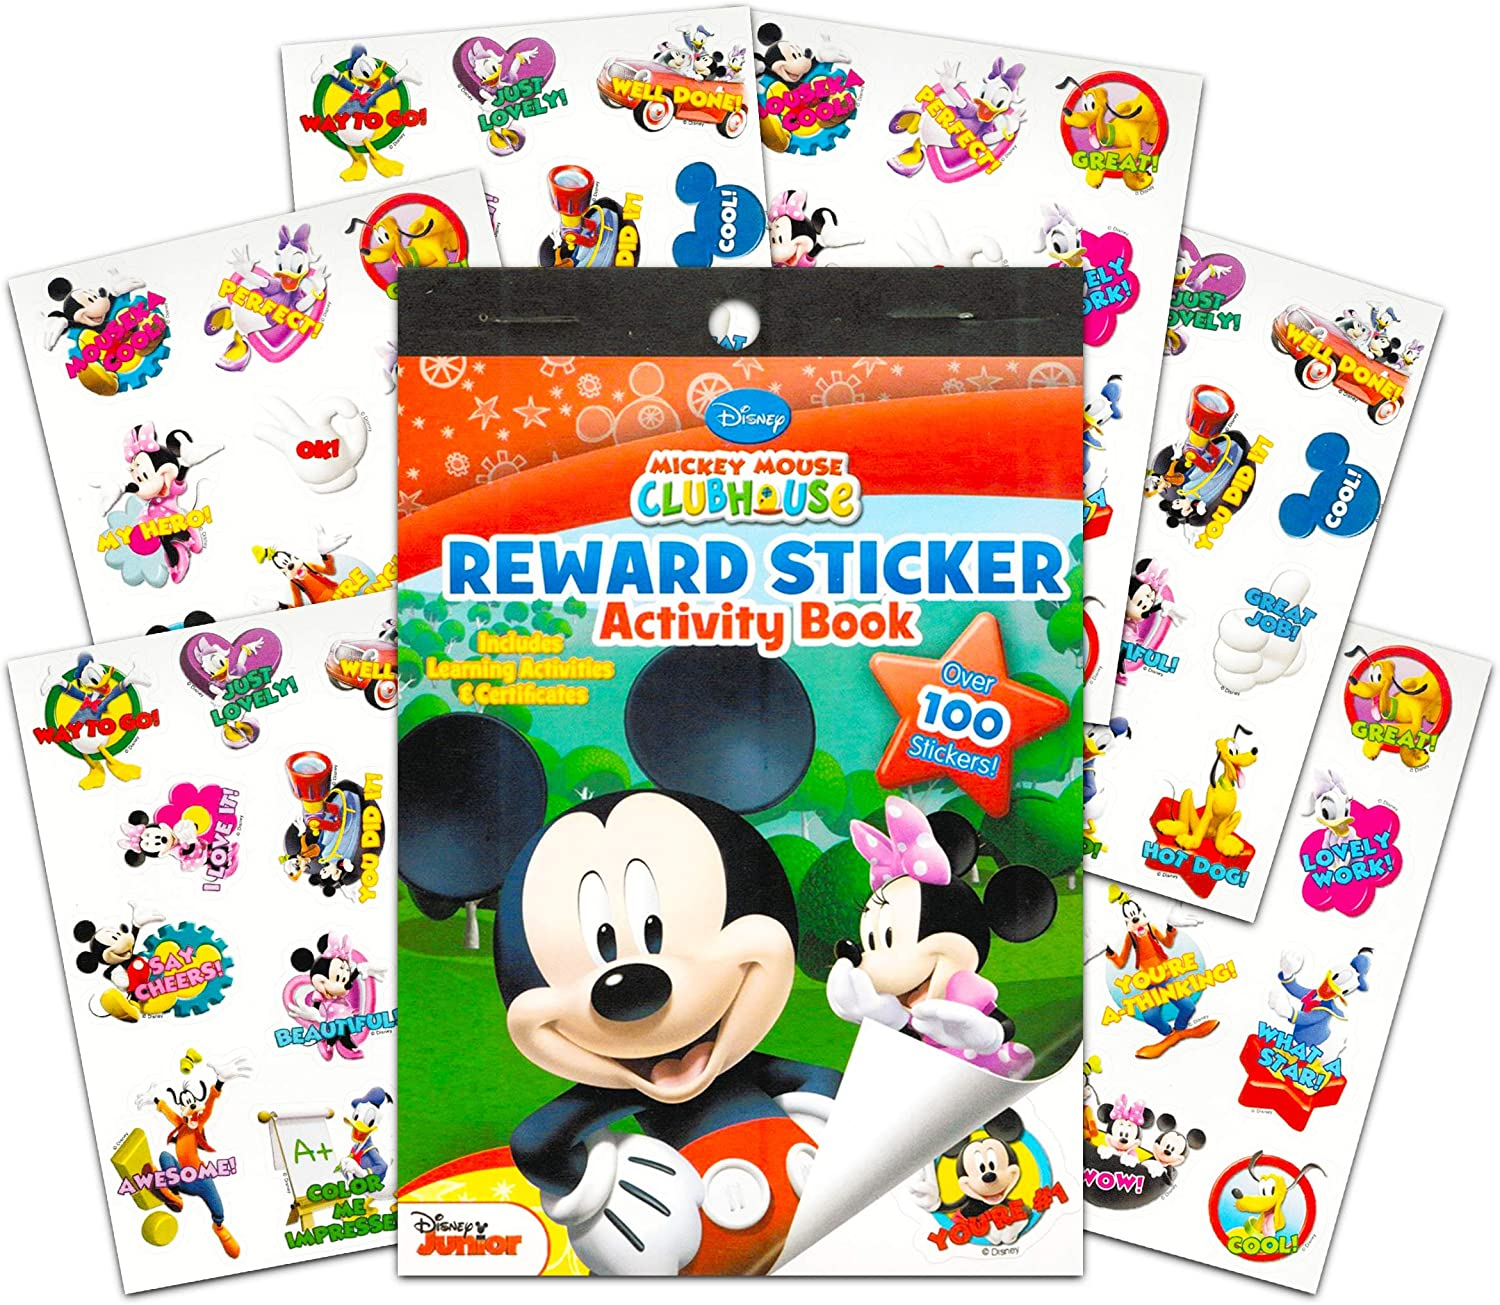 Bendon Publishing Mickey Mouse Sticker Party Favors Packs ~ 6 Mini Sticker Activity Books with Coloring Pages Puzzles Mazes and Over 100 Stickers Party Supplies